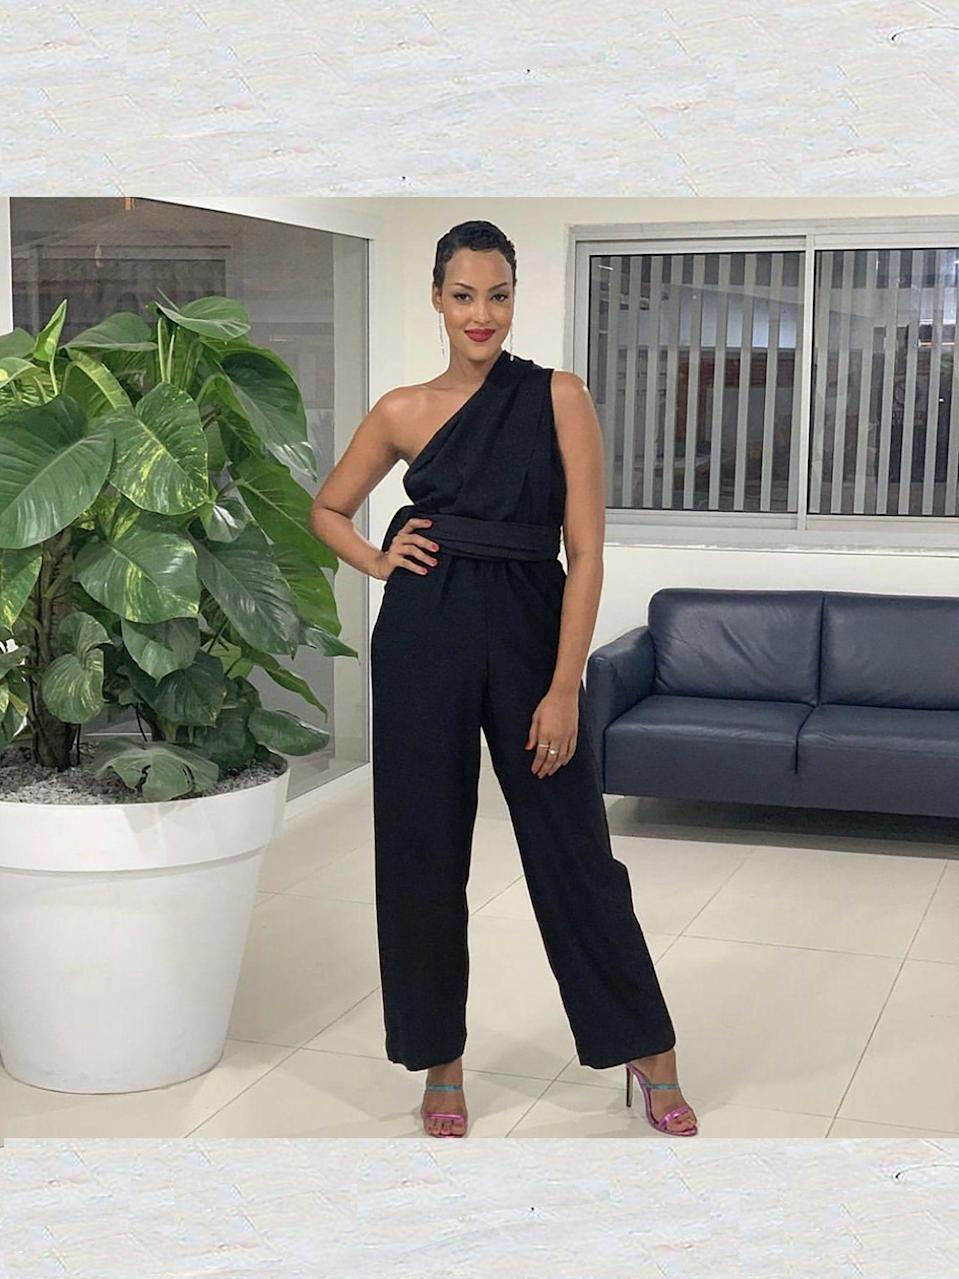 """<p><strong>DIARRABLU</strong></p><p>diarrablu.com</p><p><strong>$195.00</strong></p><p><a href=""""https://diarrablu.com/collections/jumpsuits/products/umy-noir-convertible-jumpsuit"""" rel=""""nofollow noopener"""" target=""""_blank"""" data-ylk=""""slk:Shop Now"""" class=""""link rapid-noclick-resp"""">Shop Now</a></p><p>If you are looking to shake things up, opt for a jumpsuit! They are simple, but chic and super easy to style. You can wear this particular item 19 different ways, which is pretty incredible. </p>"""